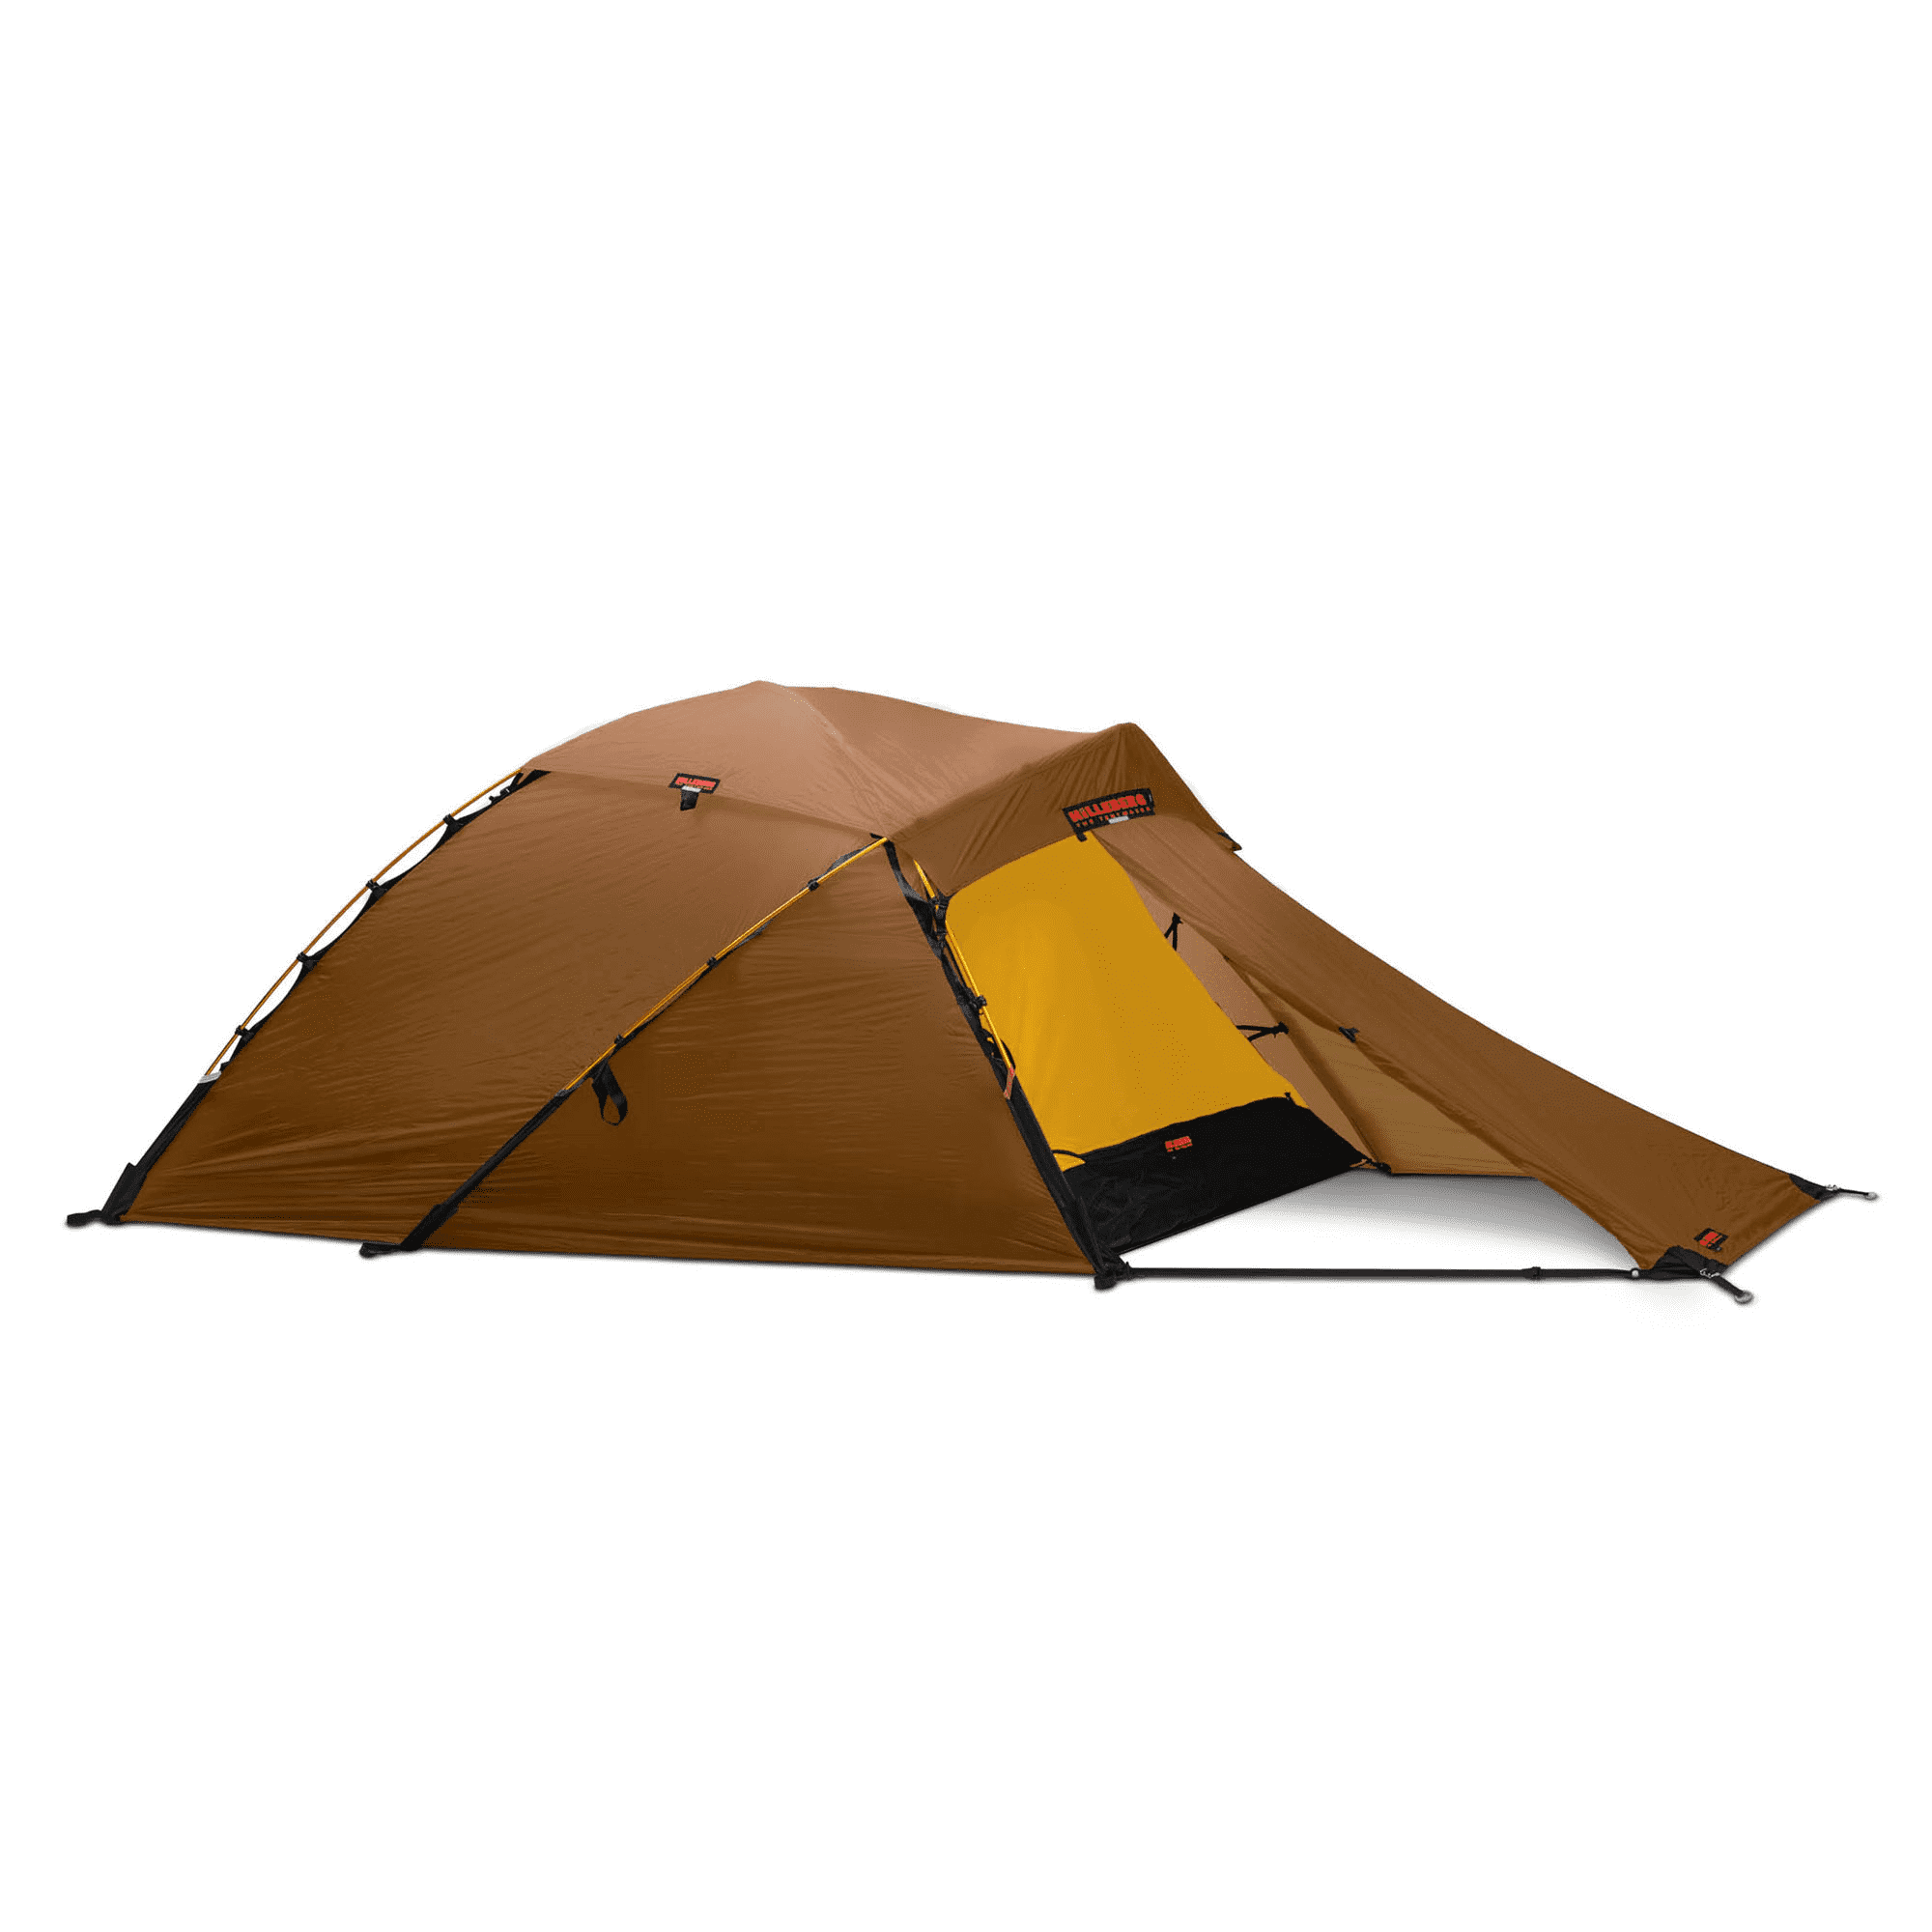 Hilleberg Jannu 2 Person Tent in Sand